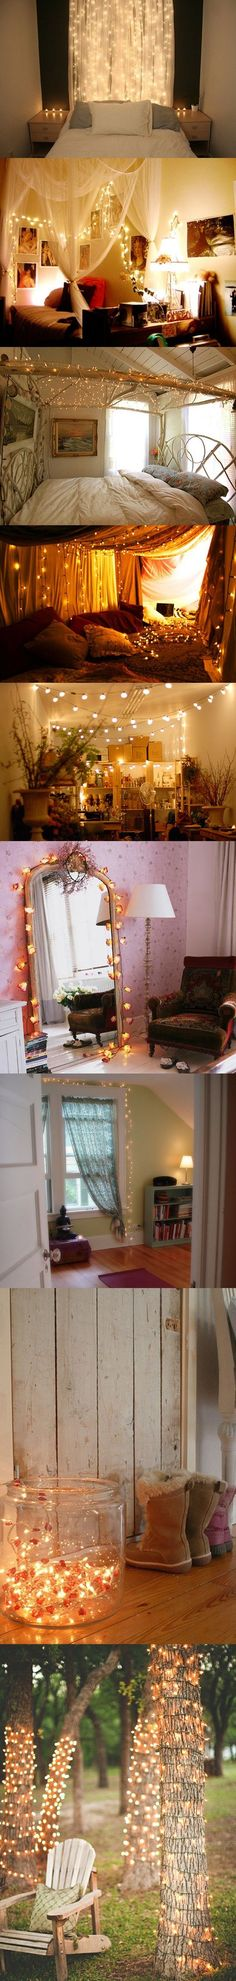 Would love to hang string lights in my room with some draping fabric!